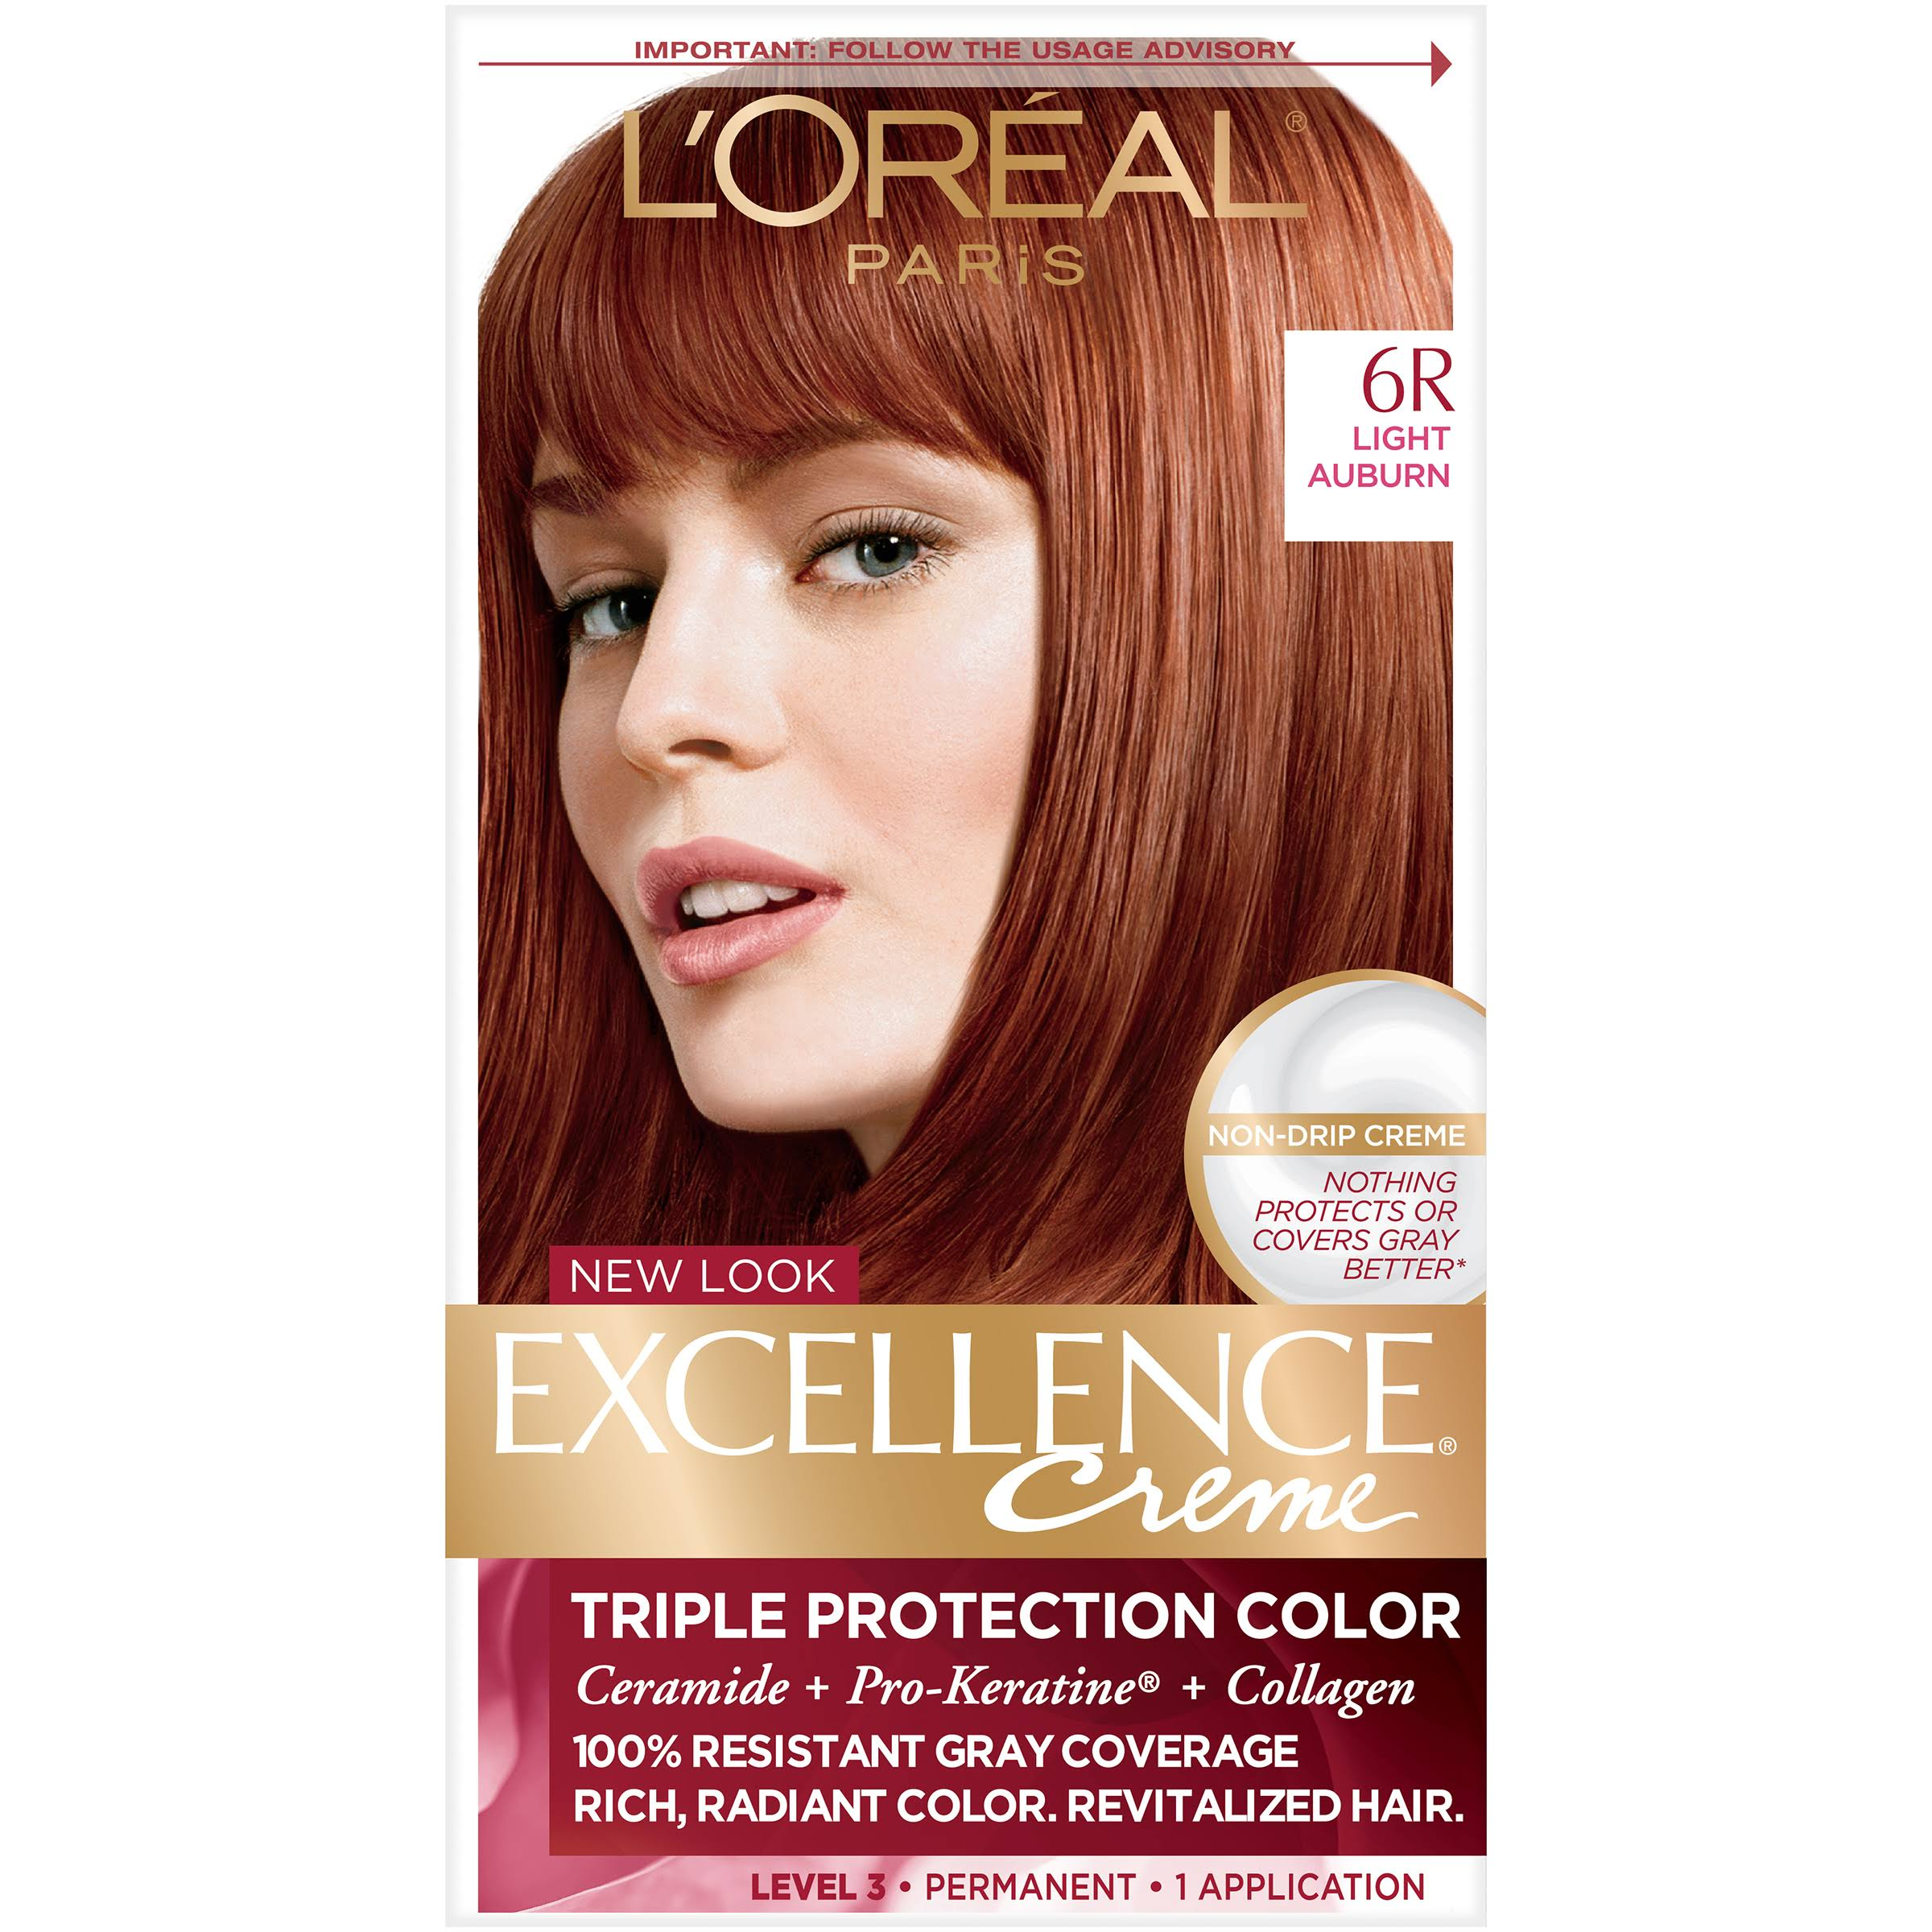 L'Oréal Paris Excellence Creme Permanent Hair Color - 6R Light Auburn